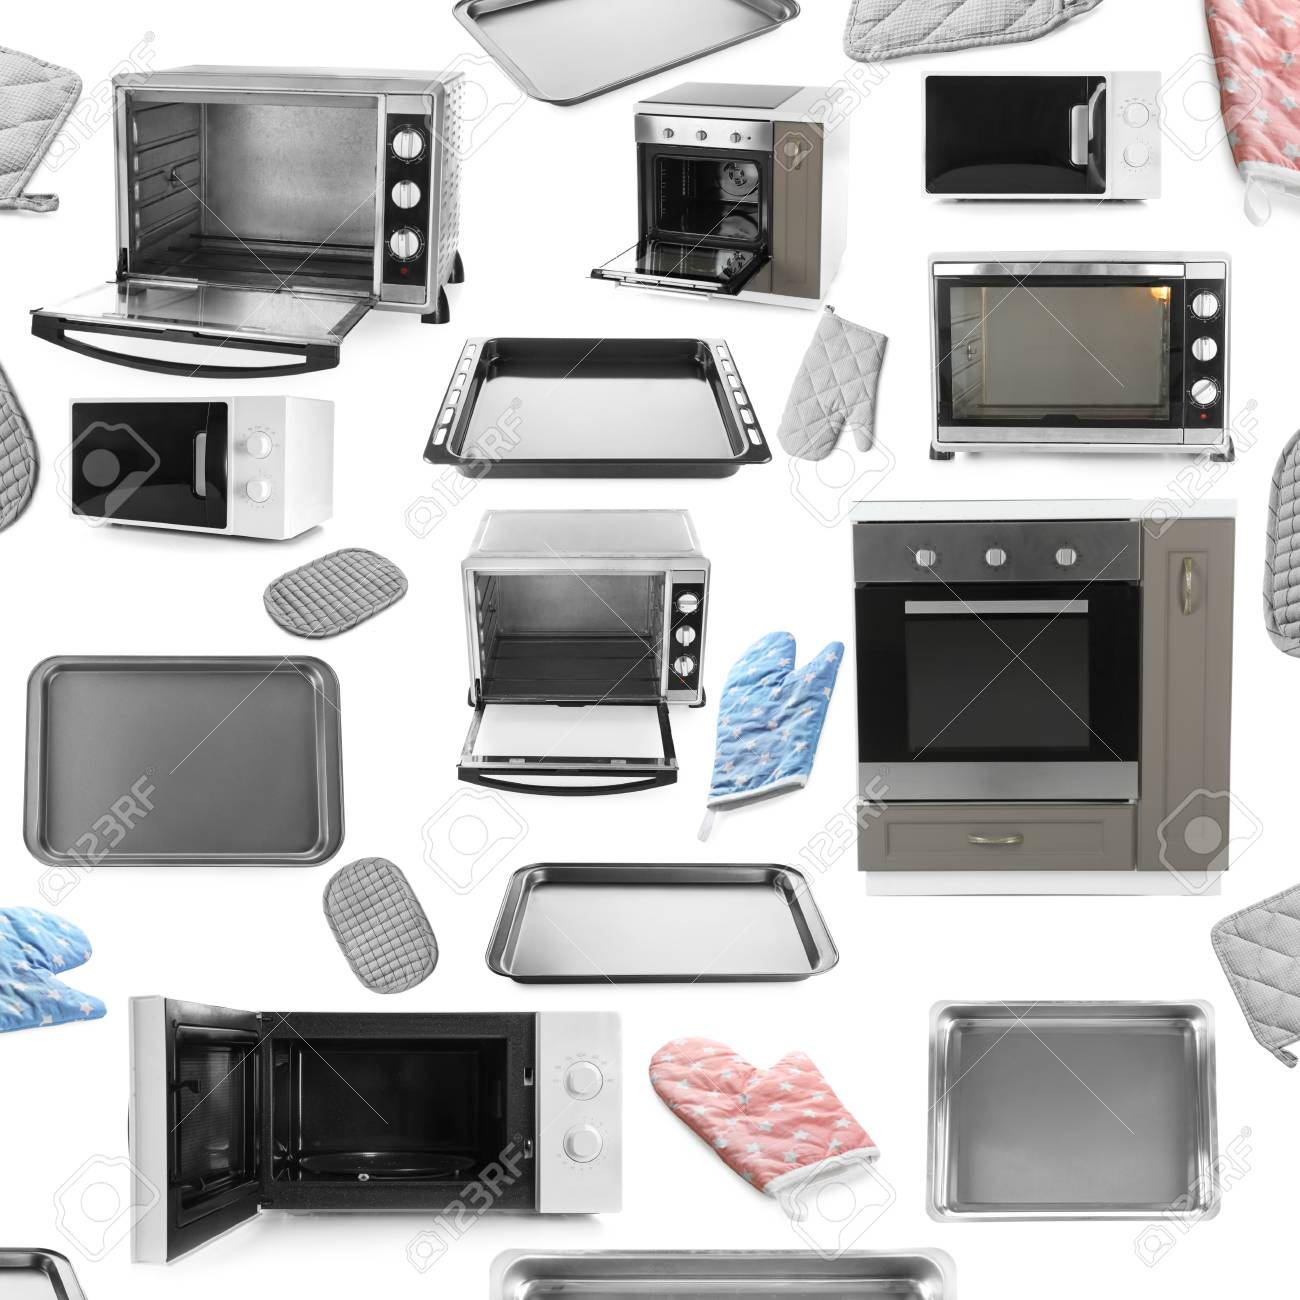 Set Of Different Ovens And Kitchenware On White Background Stock ...